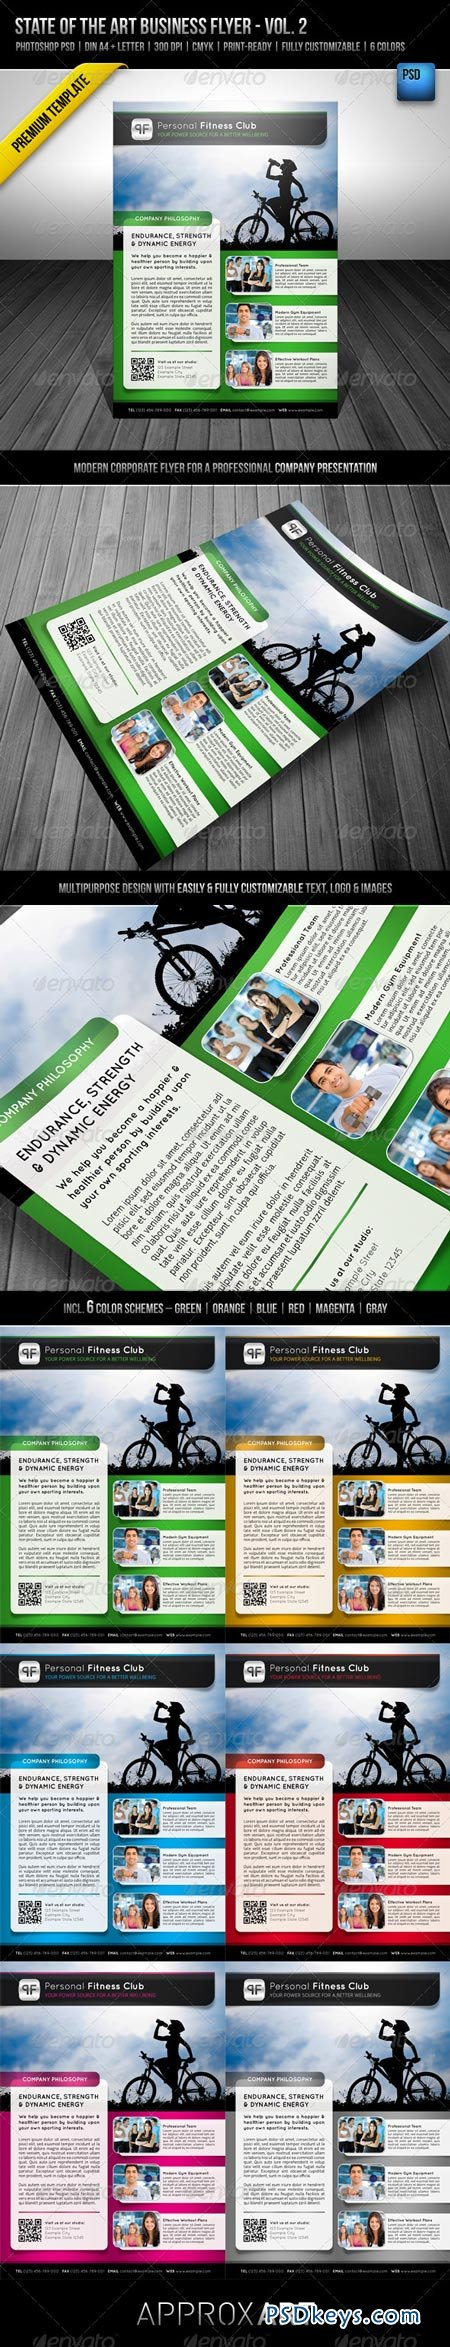 State of the Art Business Flyer - Vol. 2 2576218